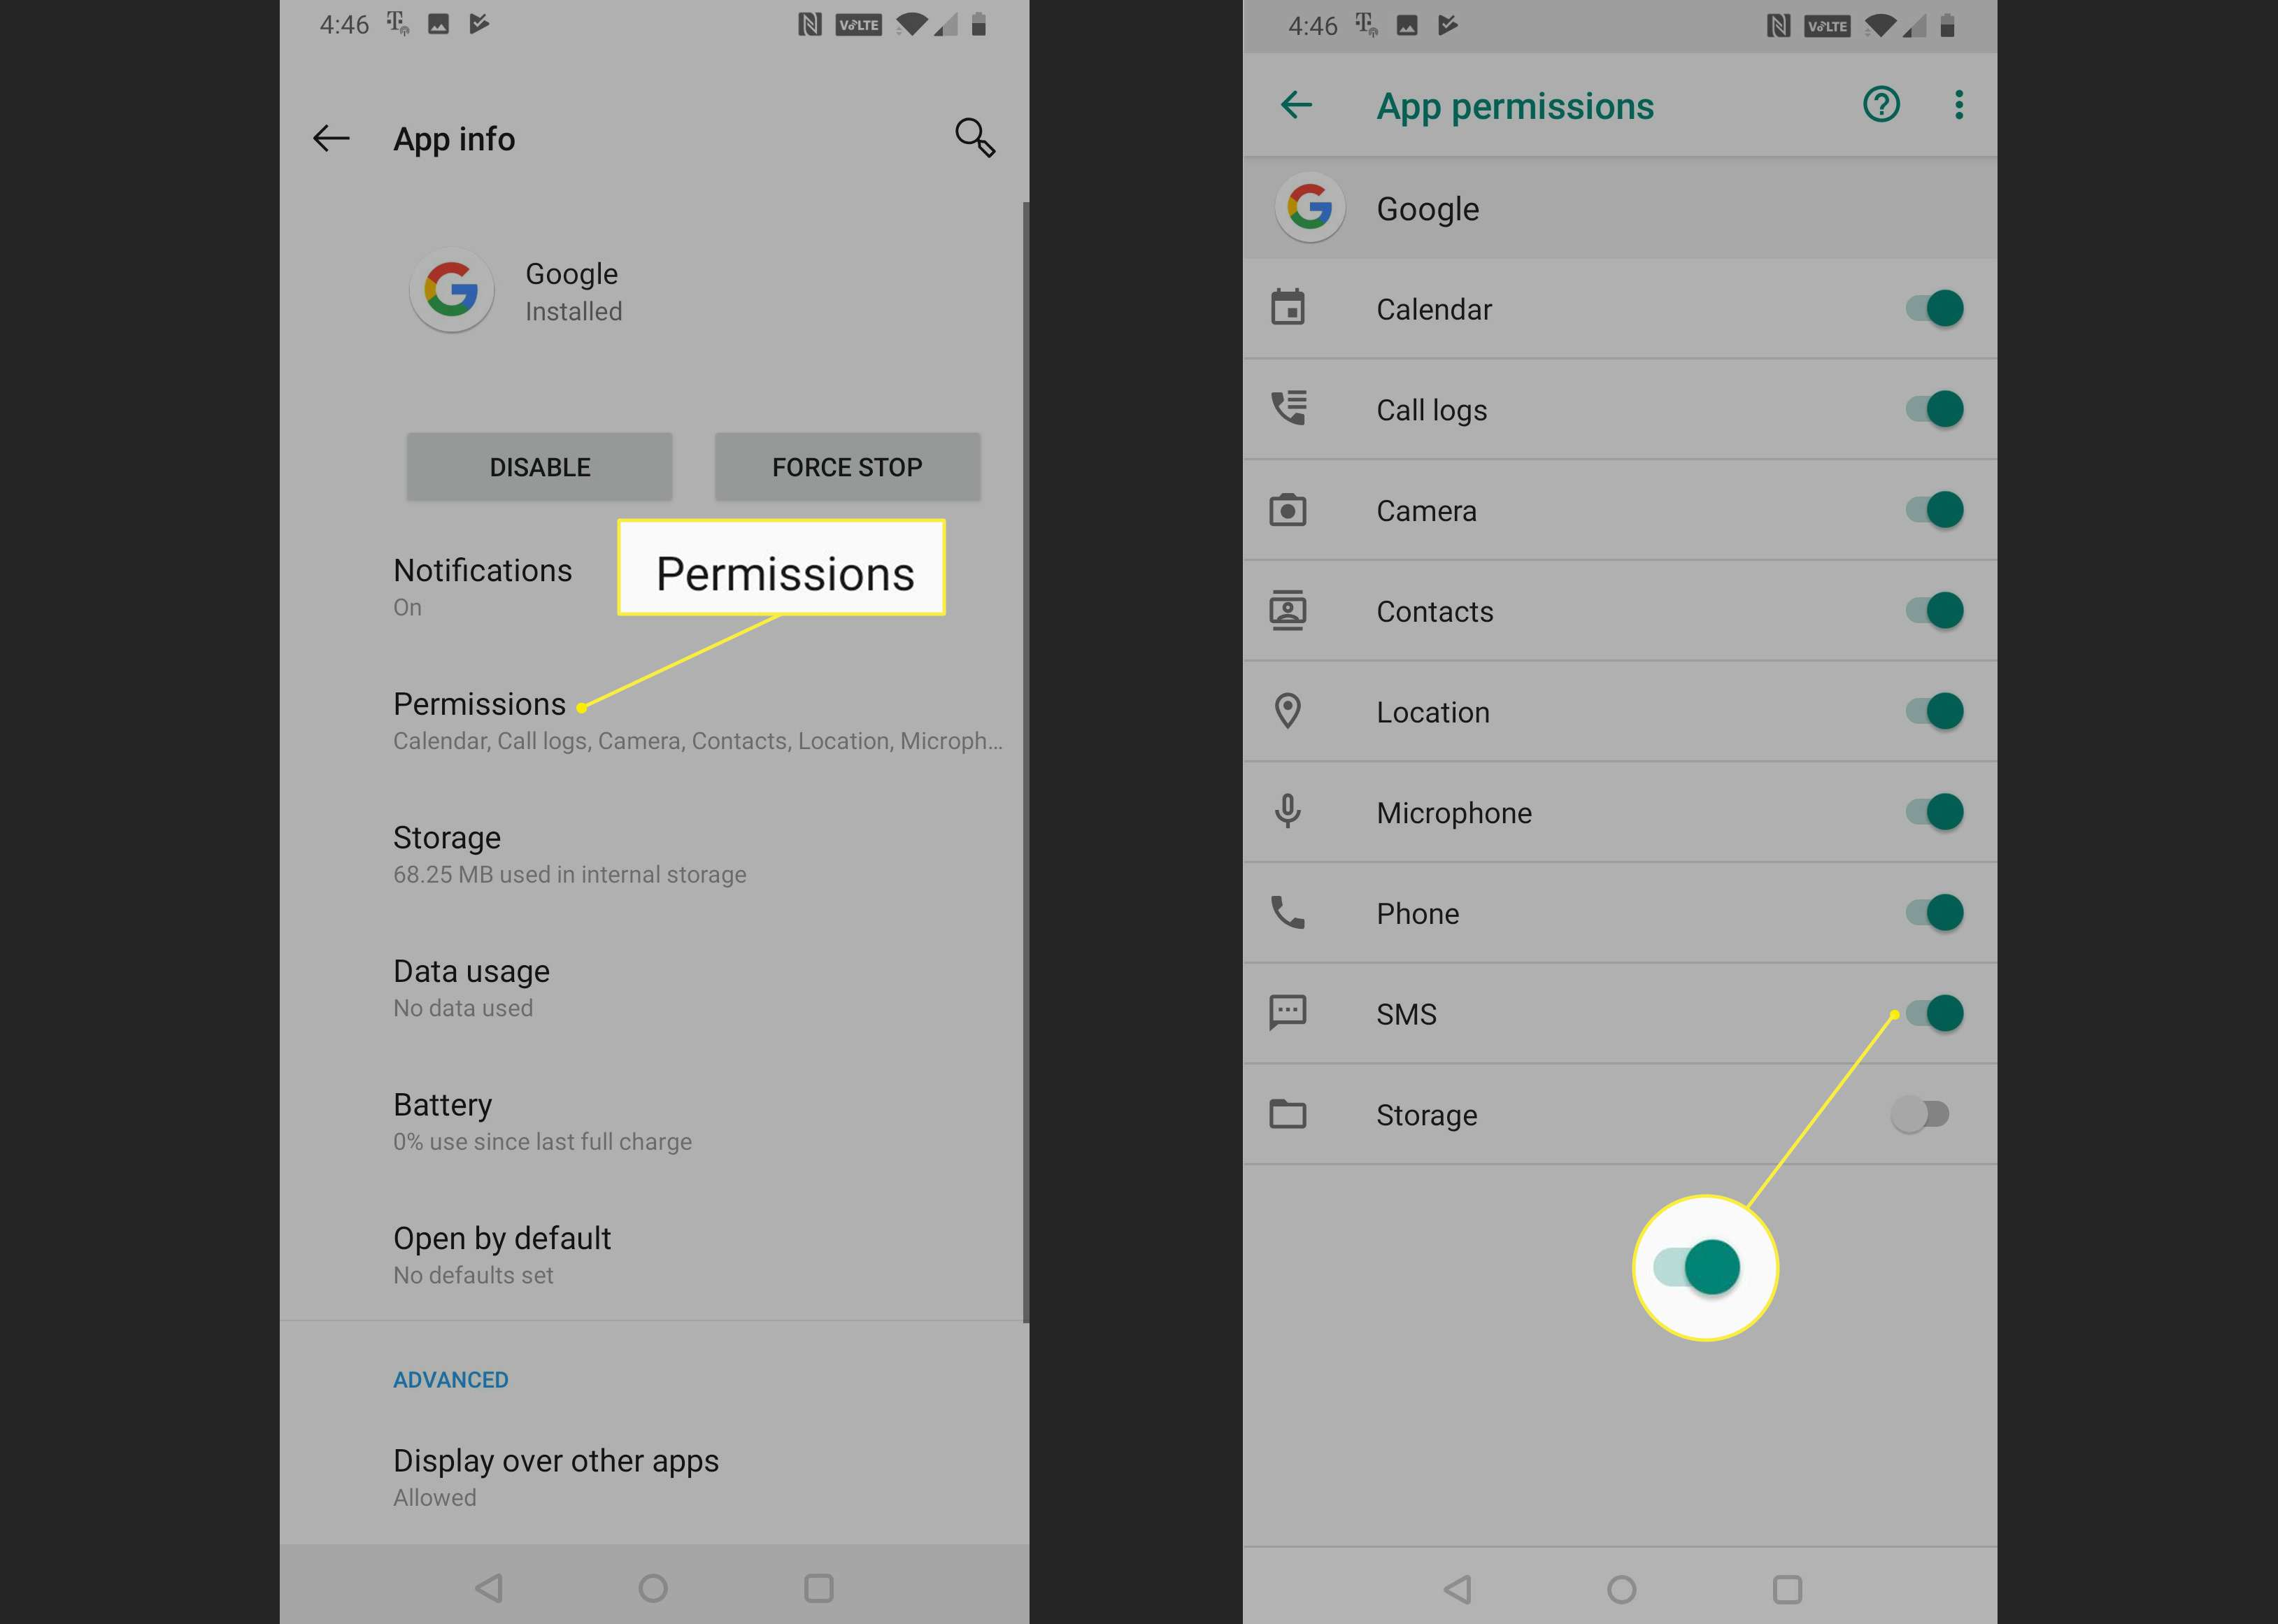 App Permissions showing the SMS slider in the On position